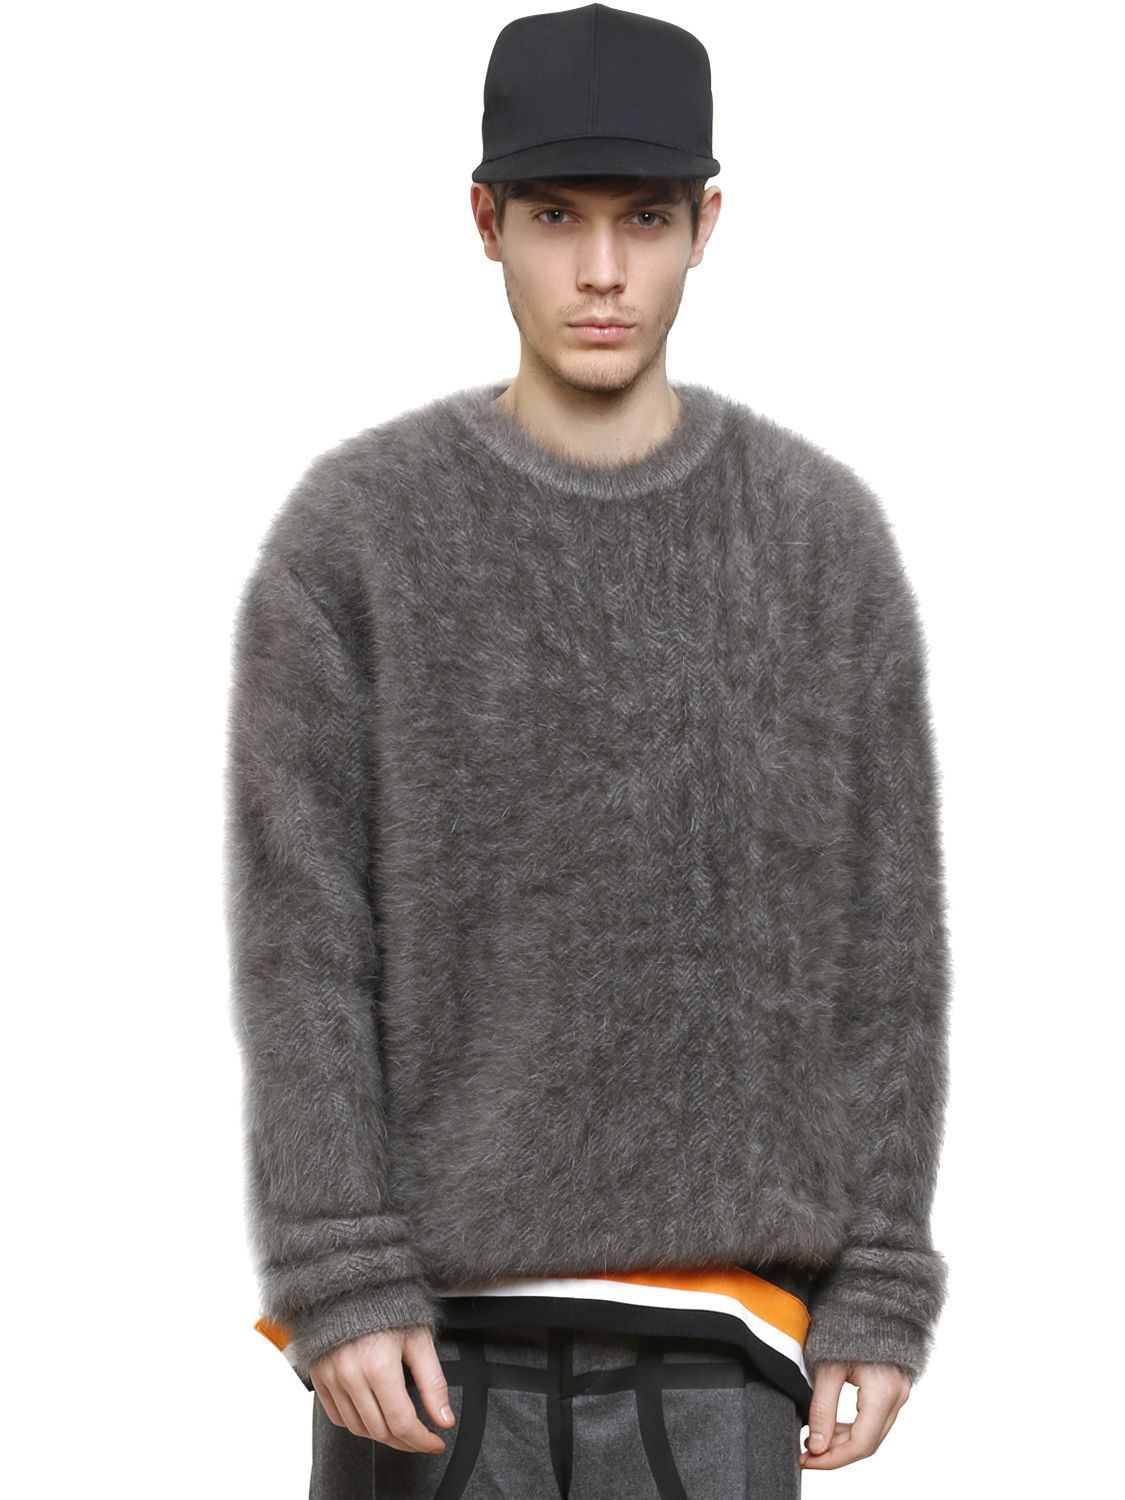 Shop eBay for great deals on Angora Sweaters Turtleneck In Men's Sweaters. You'll find new or used products in Angora Sweaters Turtleneck In Men's Sweaters on eBay. Free shipping on selected items.